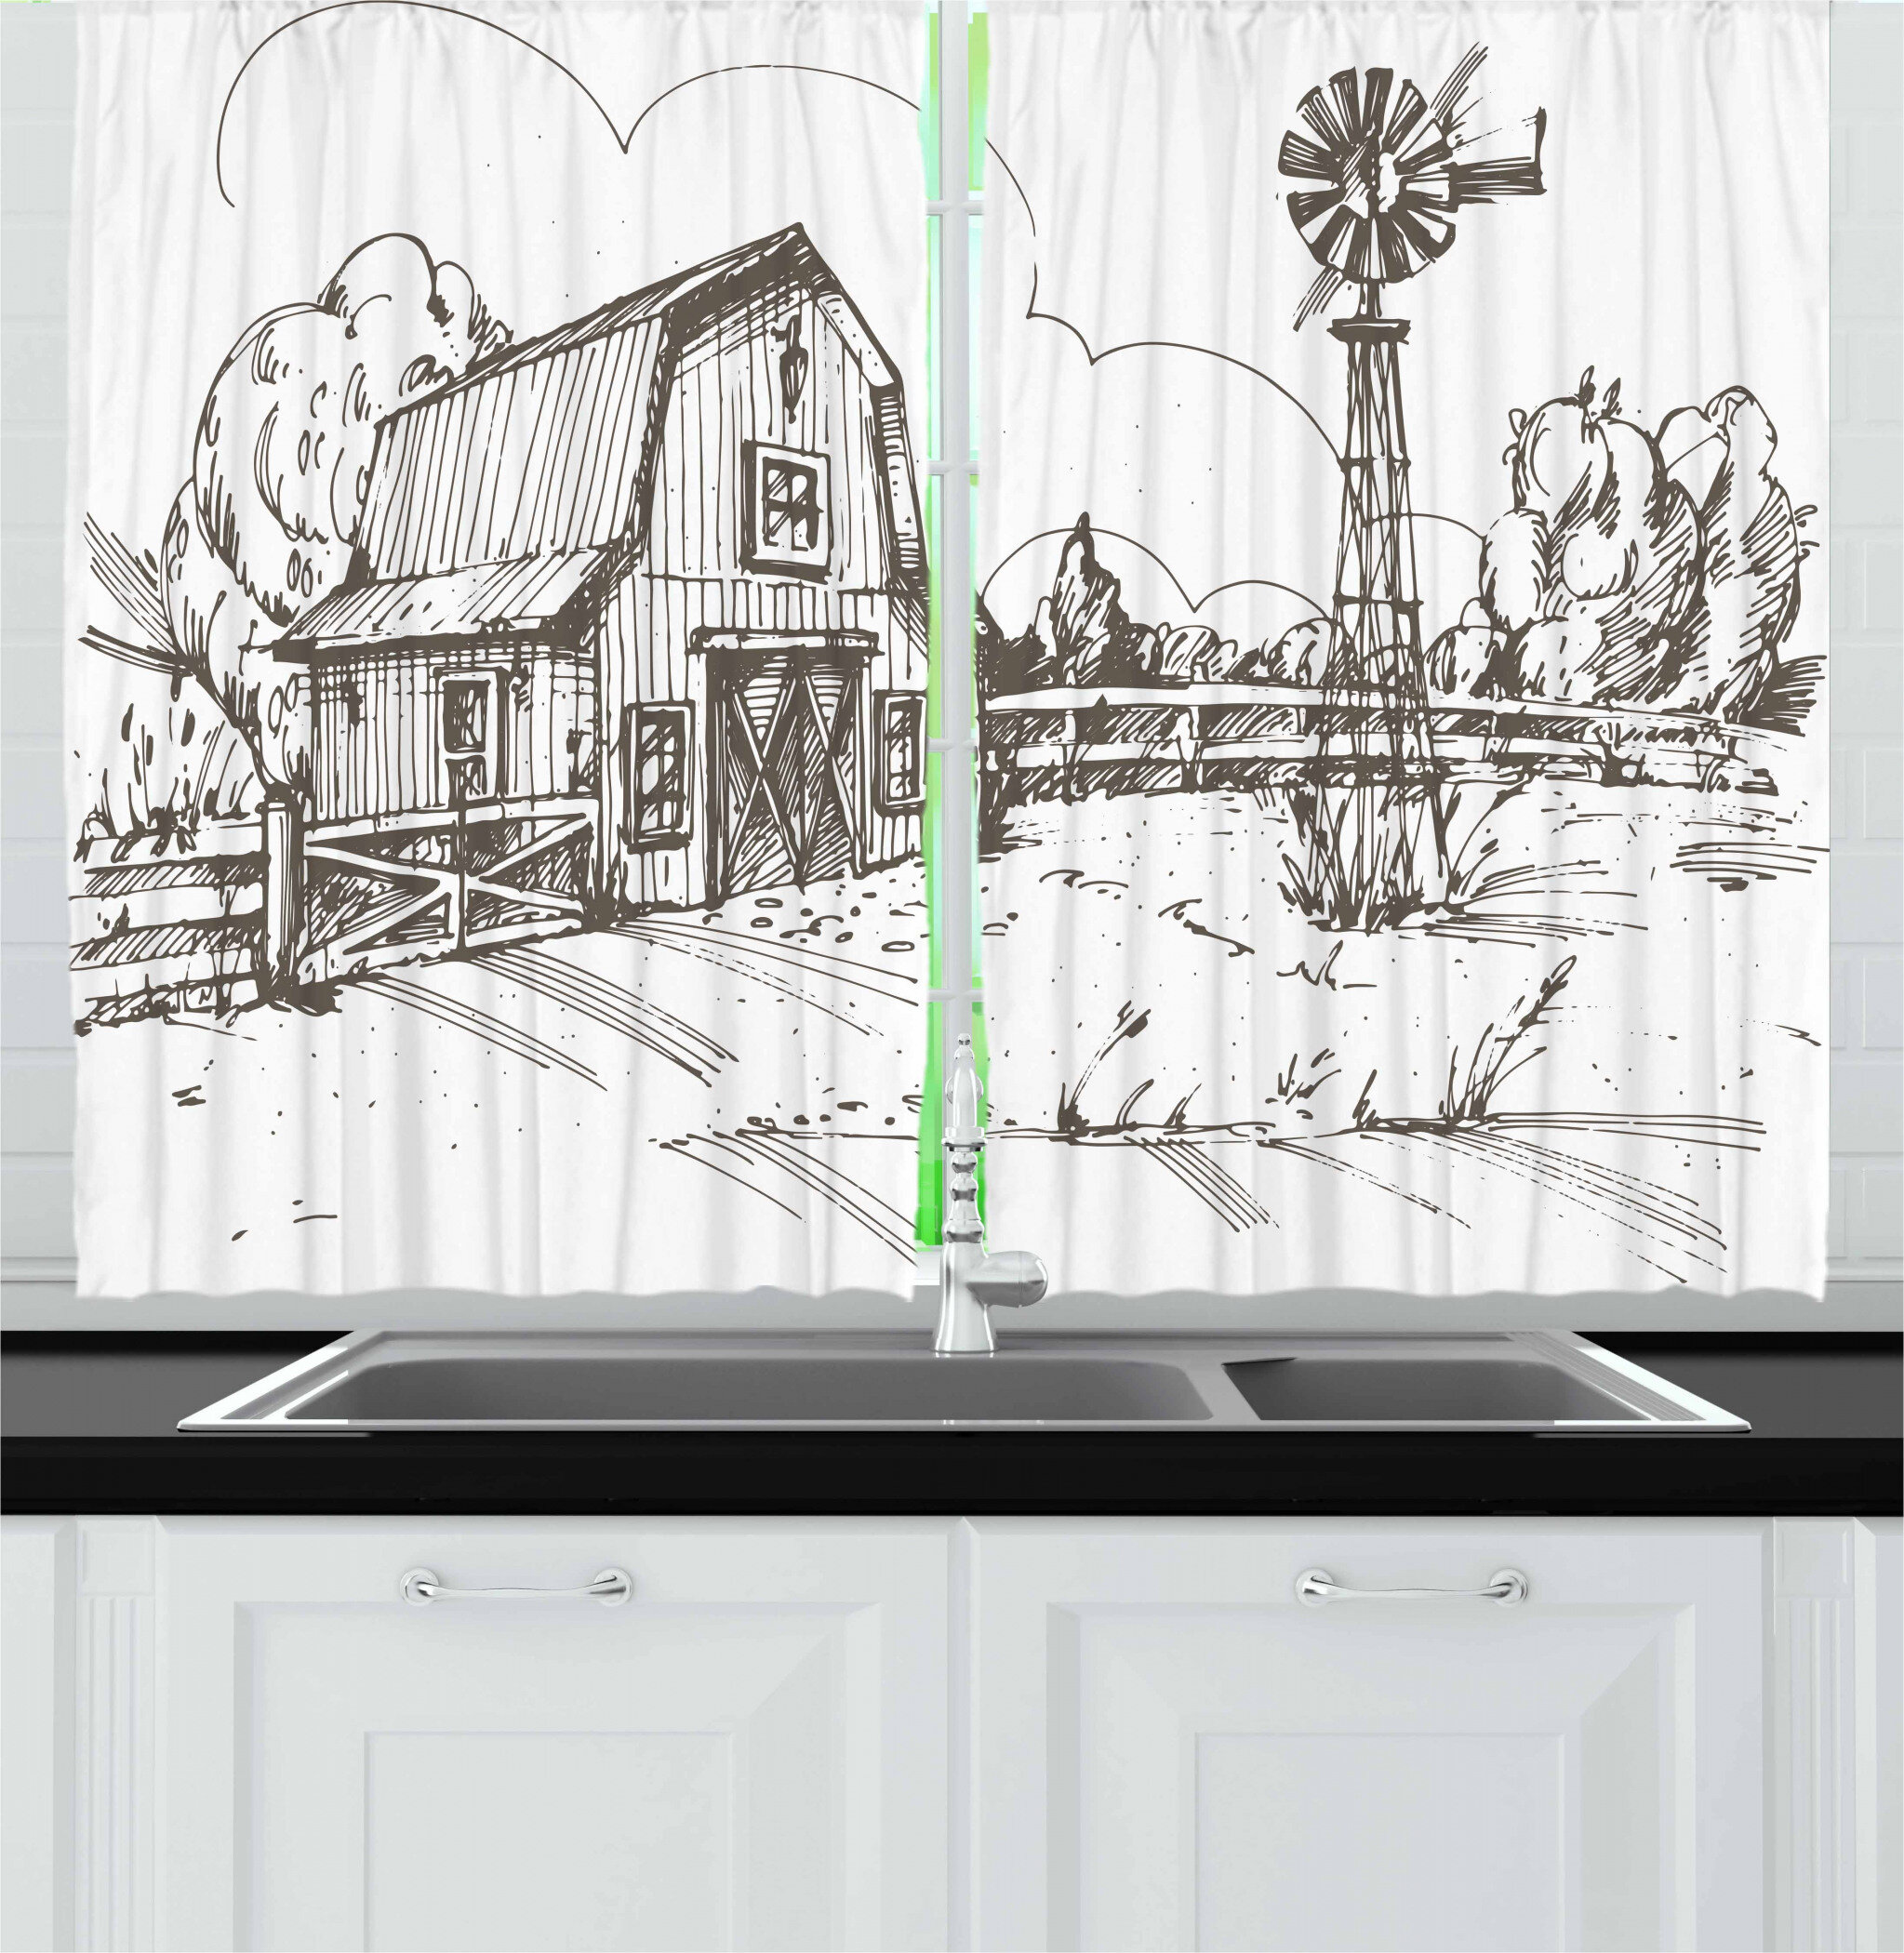 East Urban Home Windmill 2 Piece Kitchen Curtain Wayfair